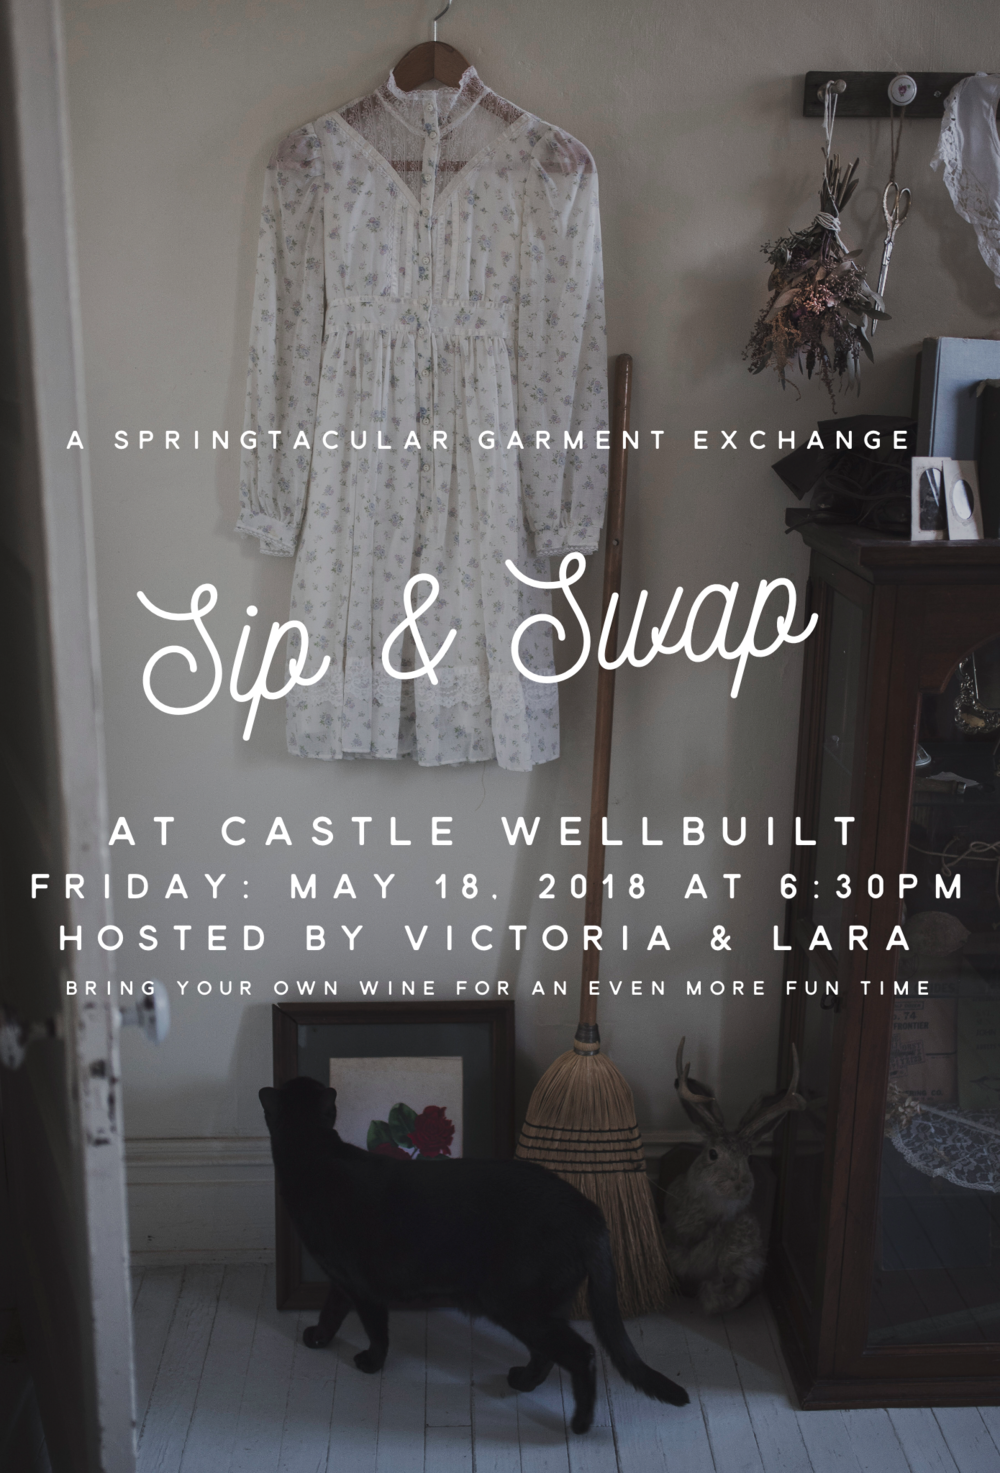 sip and swap clothing swap